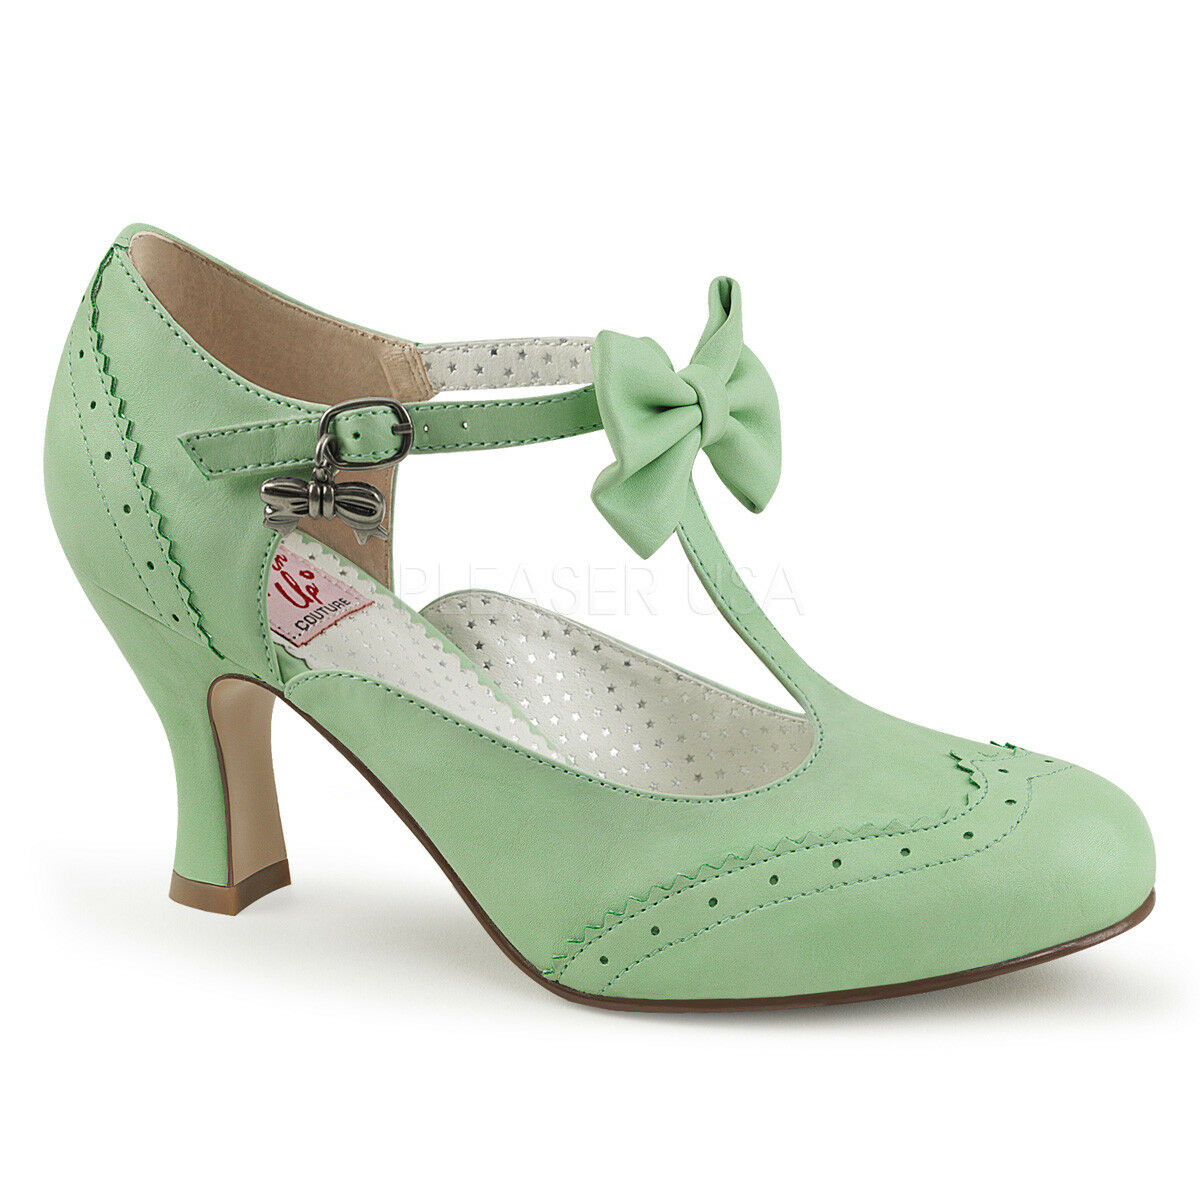 verde Mint 1920s Flapper Girl Girl Girl Gatsby Party Costume scarpe Heels Dimensione 7 8 9 10 11 4e2d55